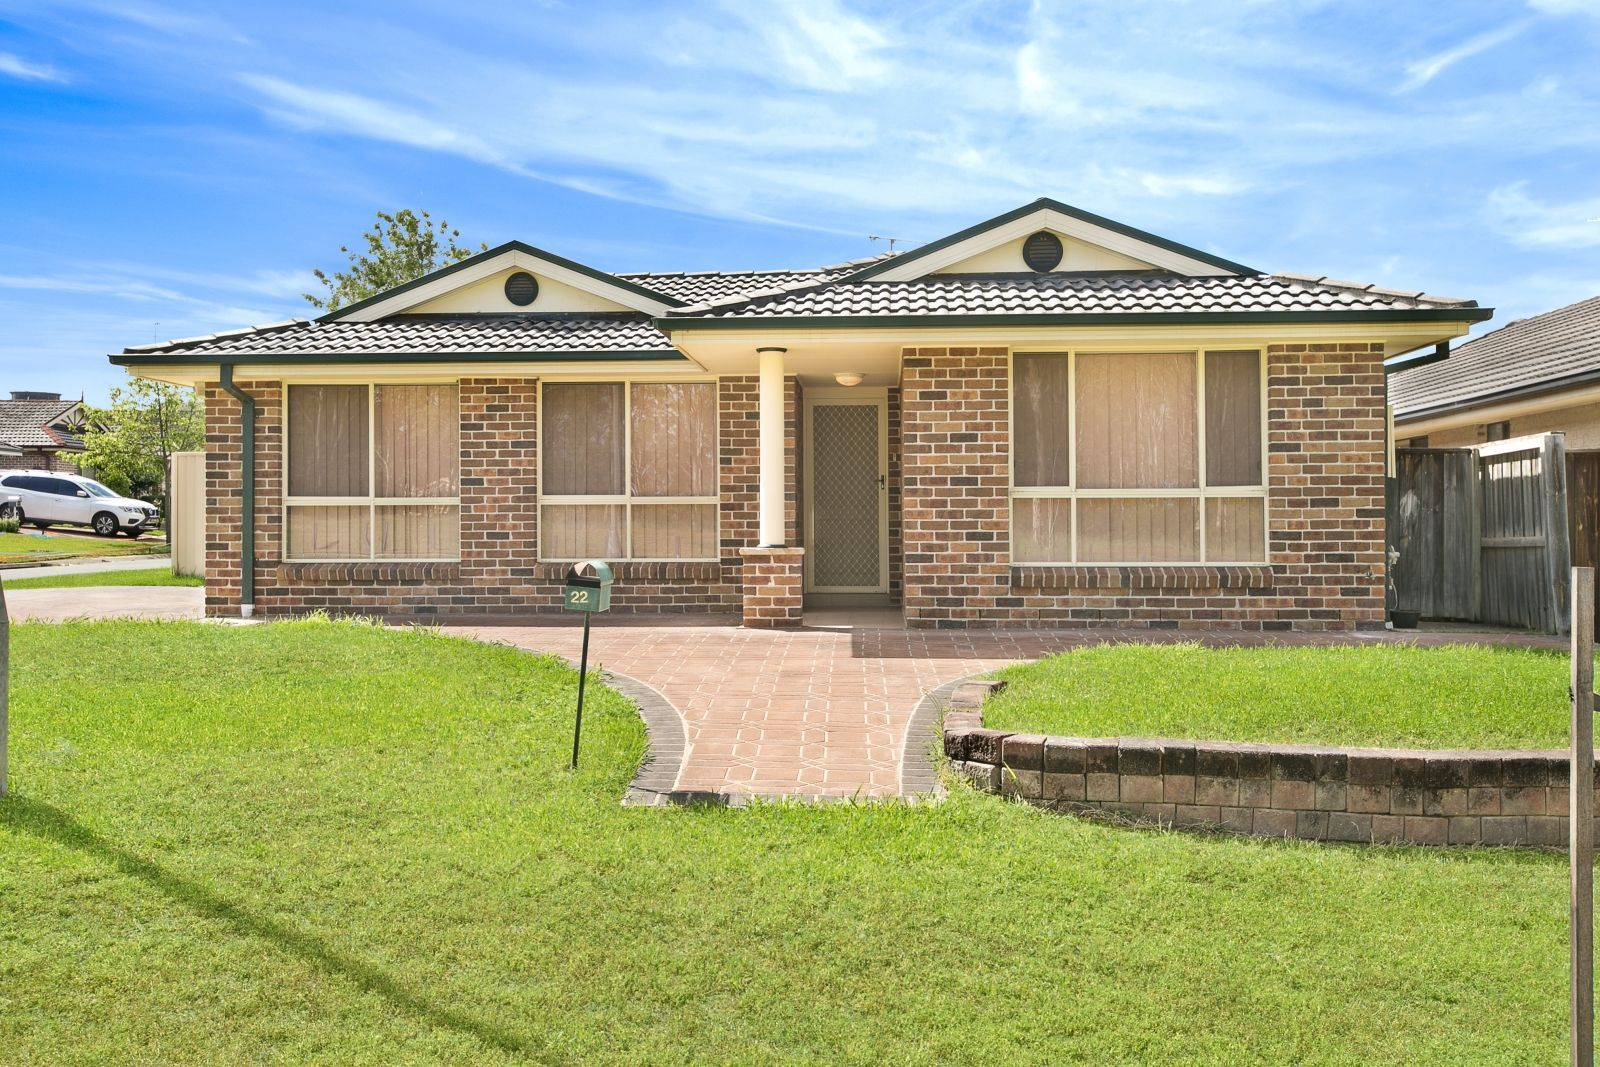 22 Stockman Road, Currans Hill NSW 2567, Image 0